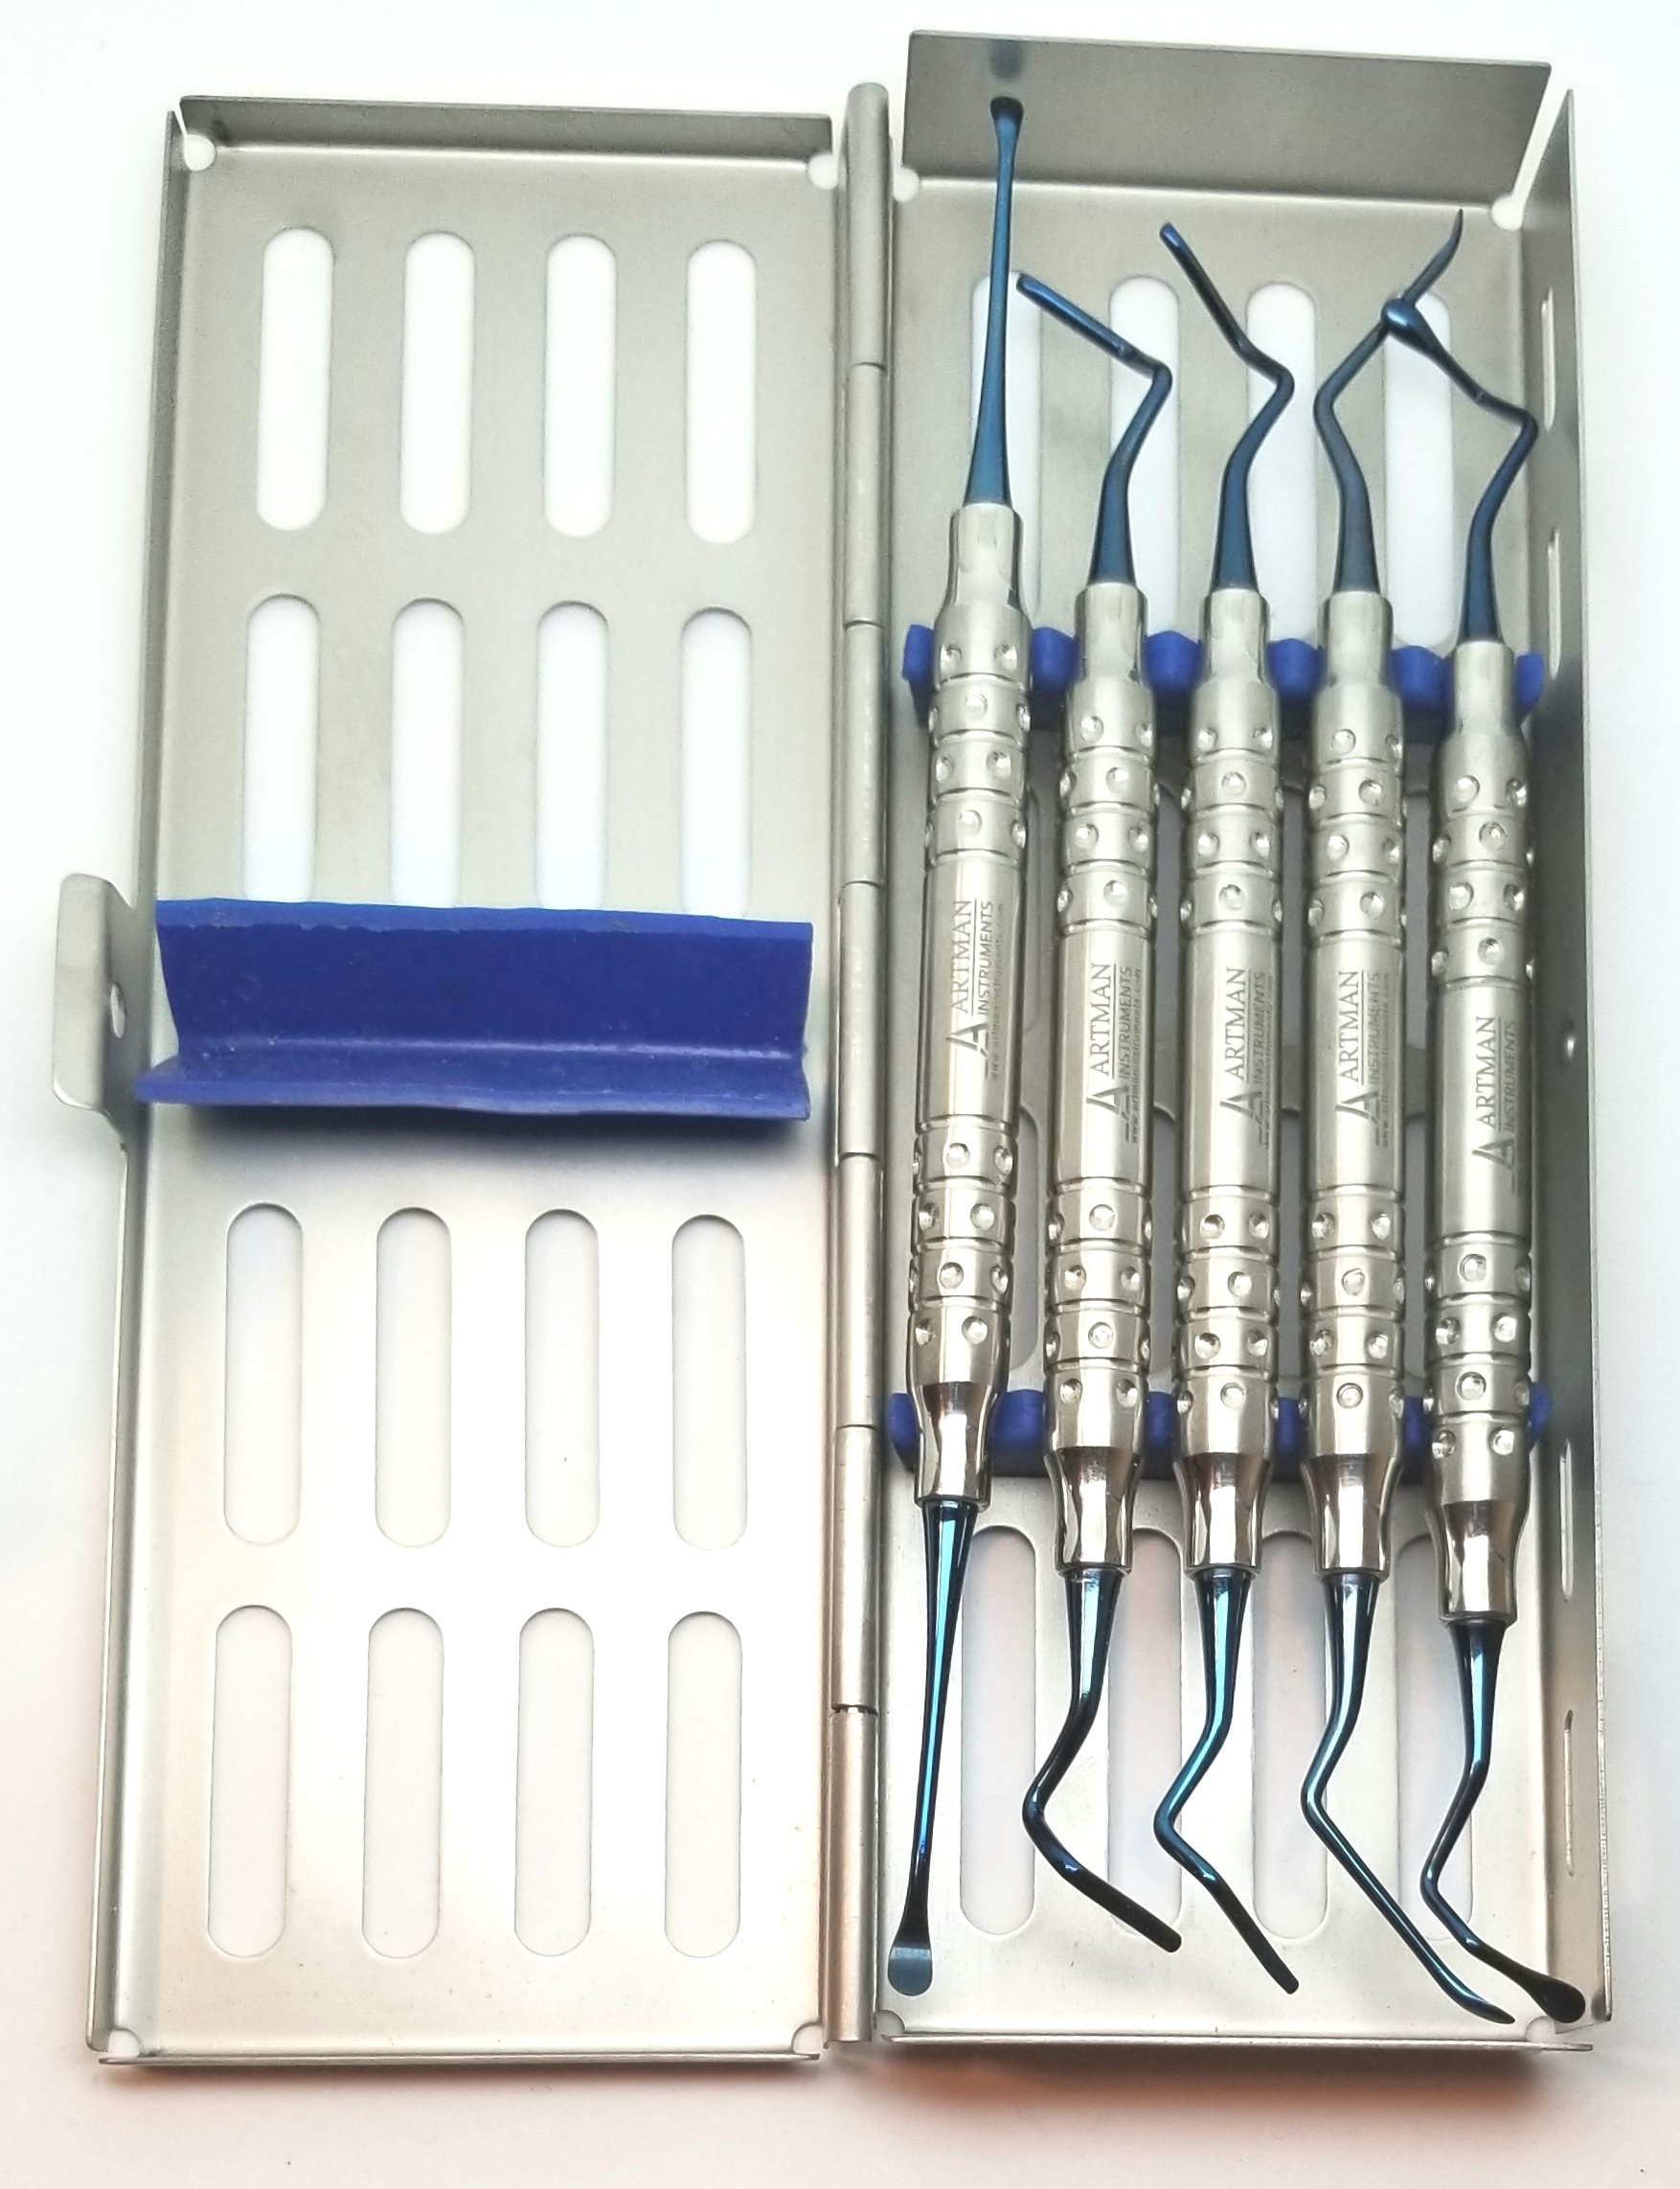 Vista Tunneling Kit in steel cassette (5 pcs, Blue plasma coating) BY Wise Linkers